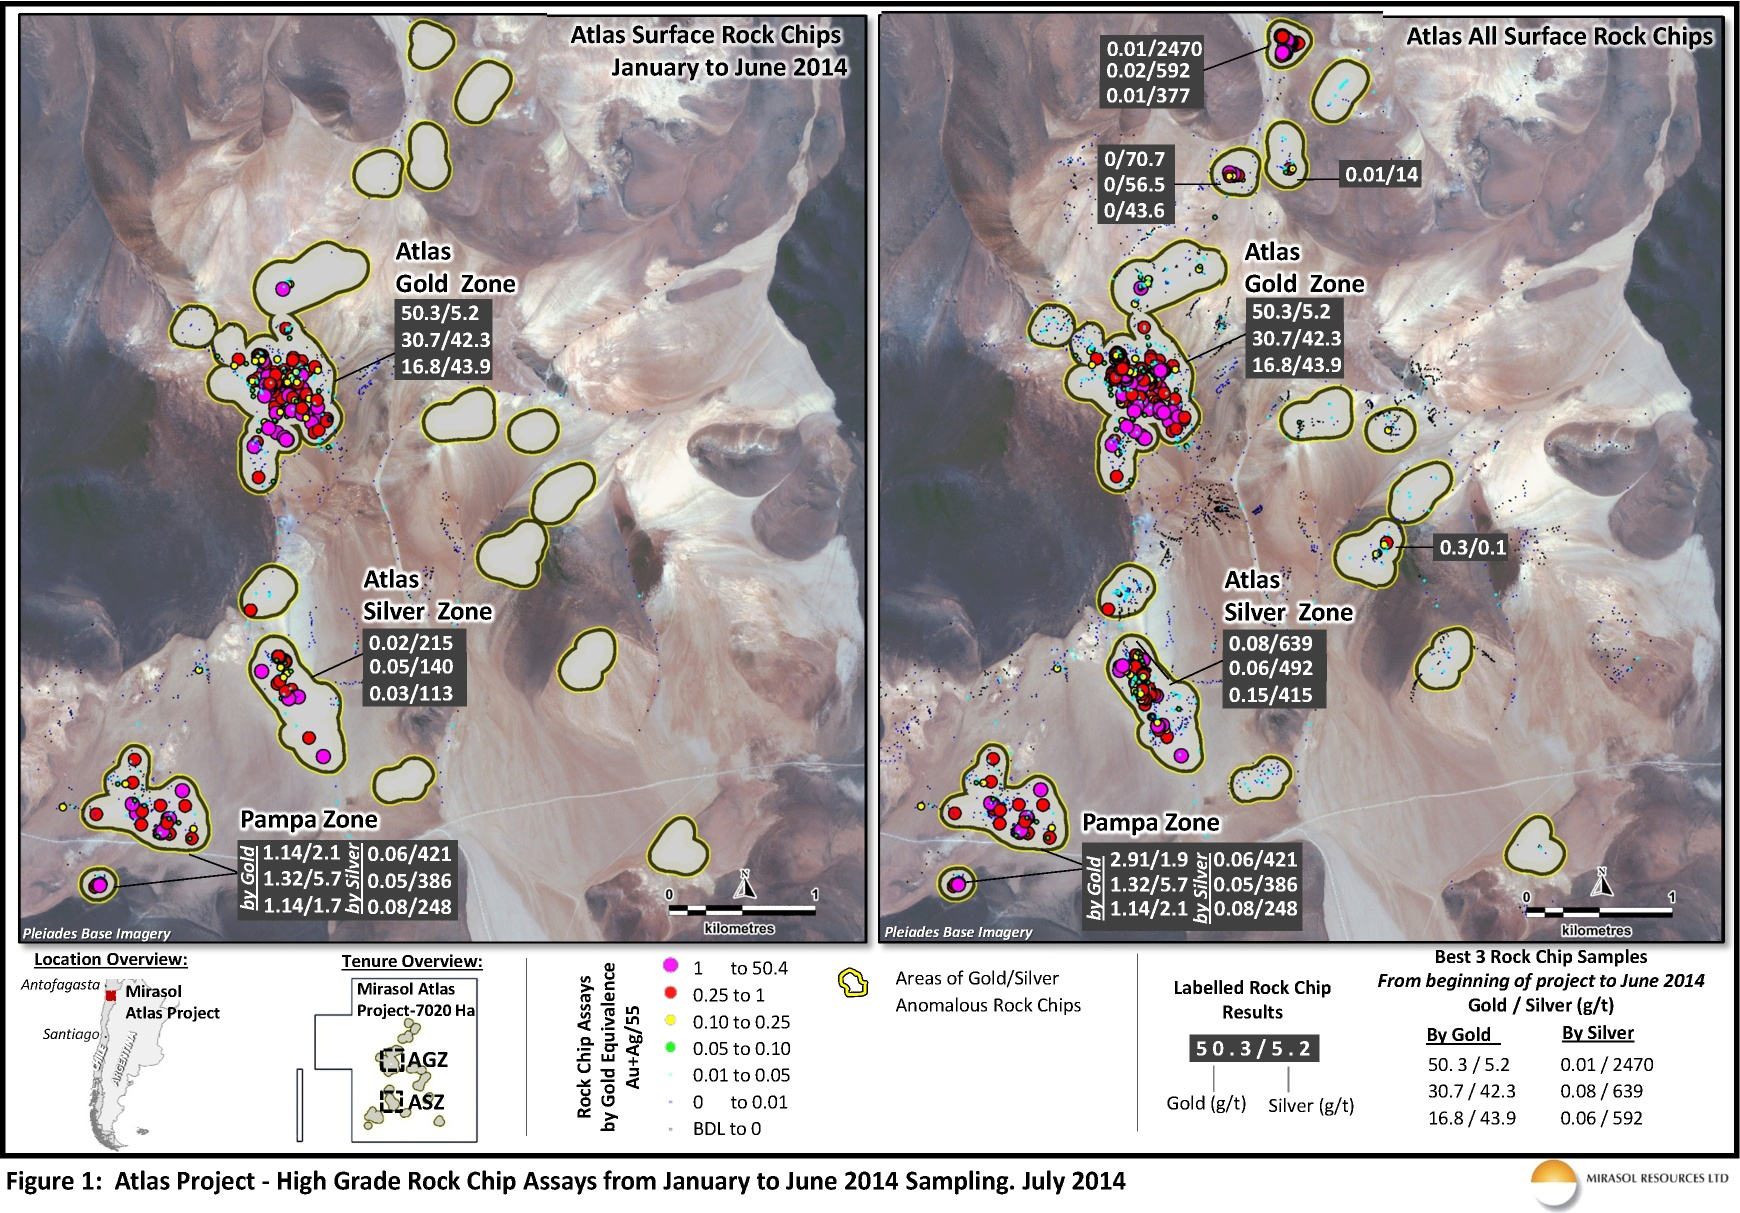 Figure 1: Atlas Project – High Grade Rock Chip Assays from January to June 2014 Sampling. June 2014